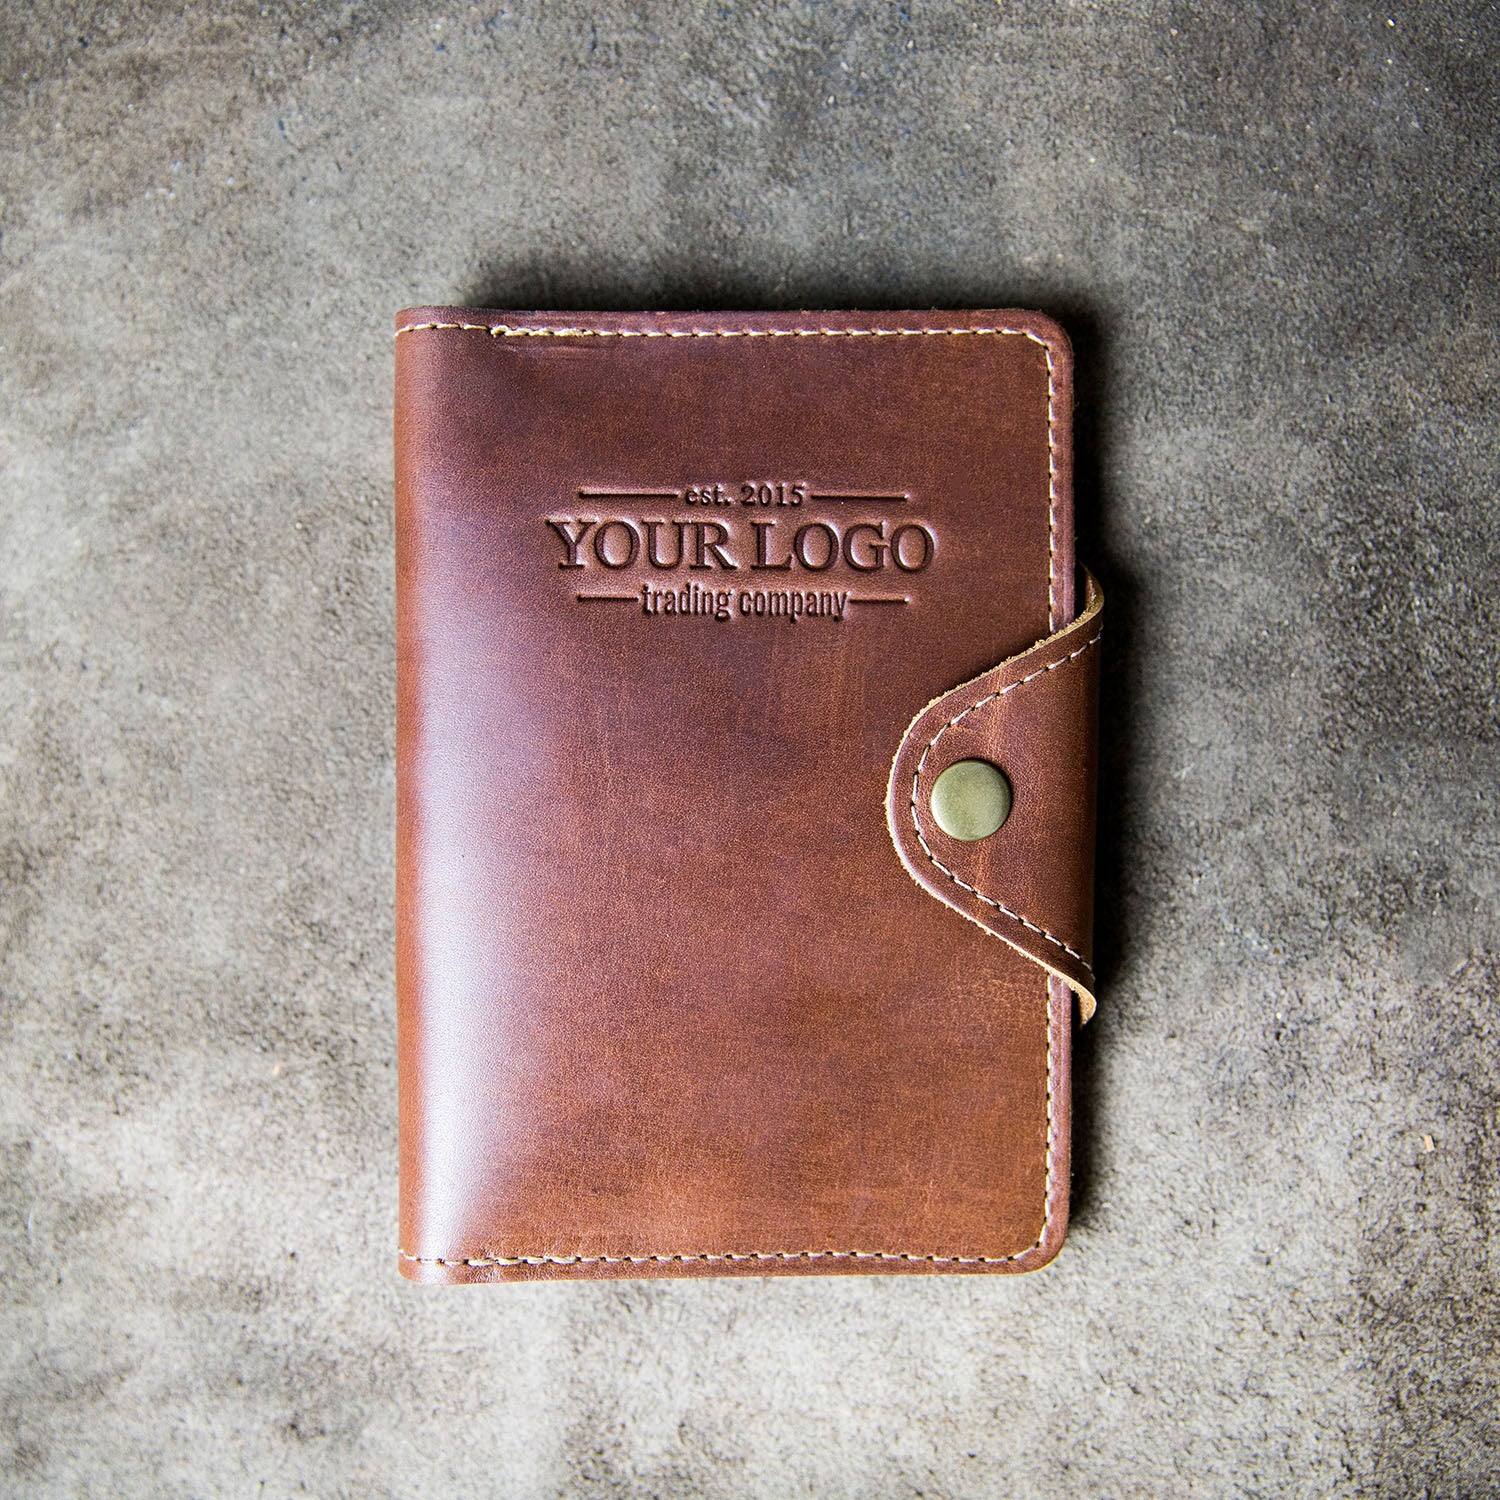 c6e7a56d Corporate Gifts - Holtz Leather